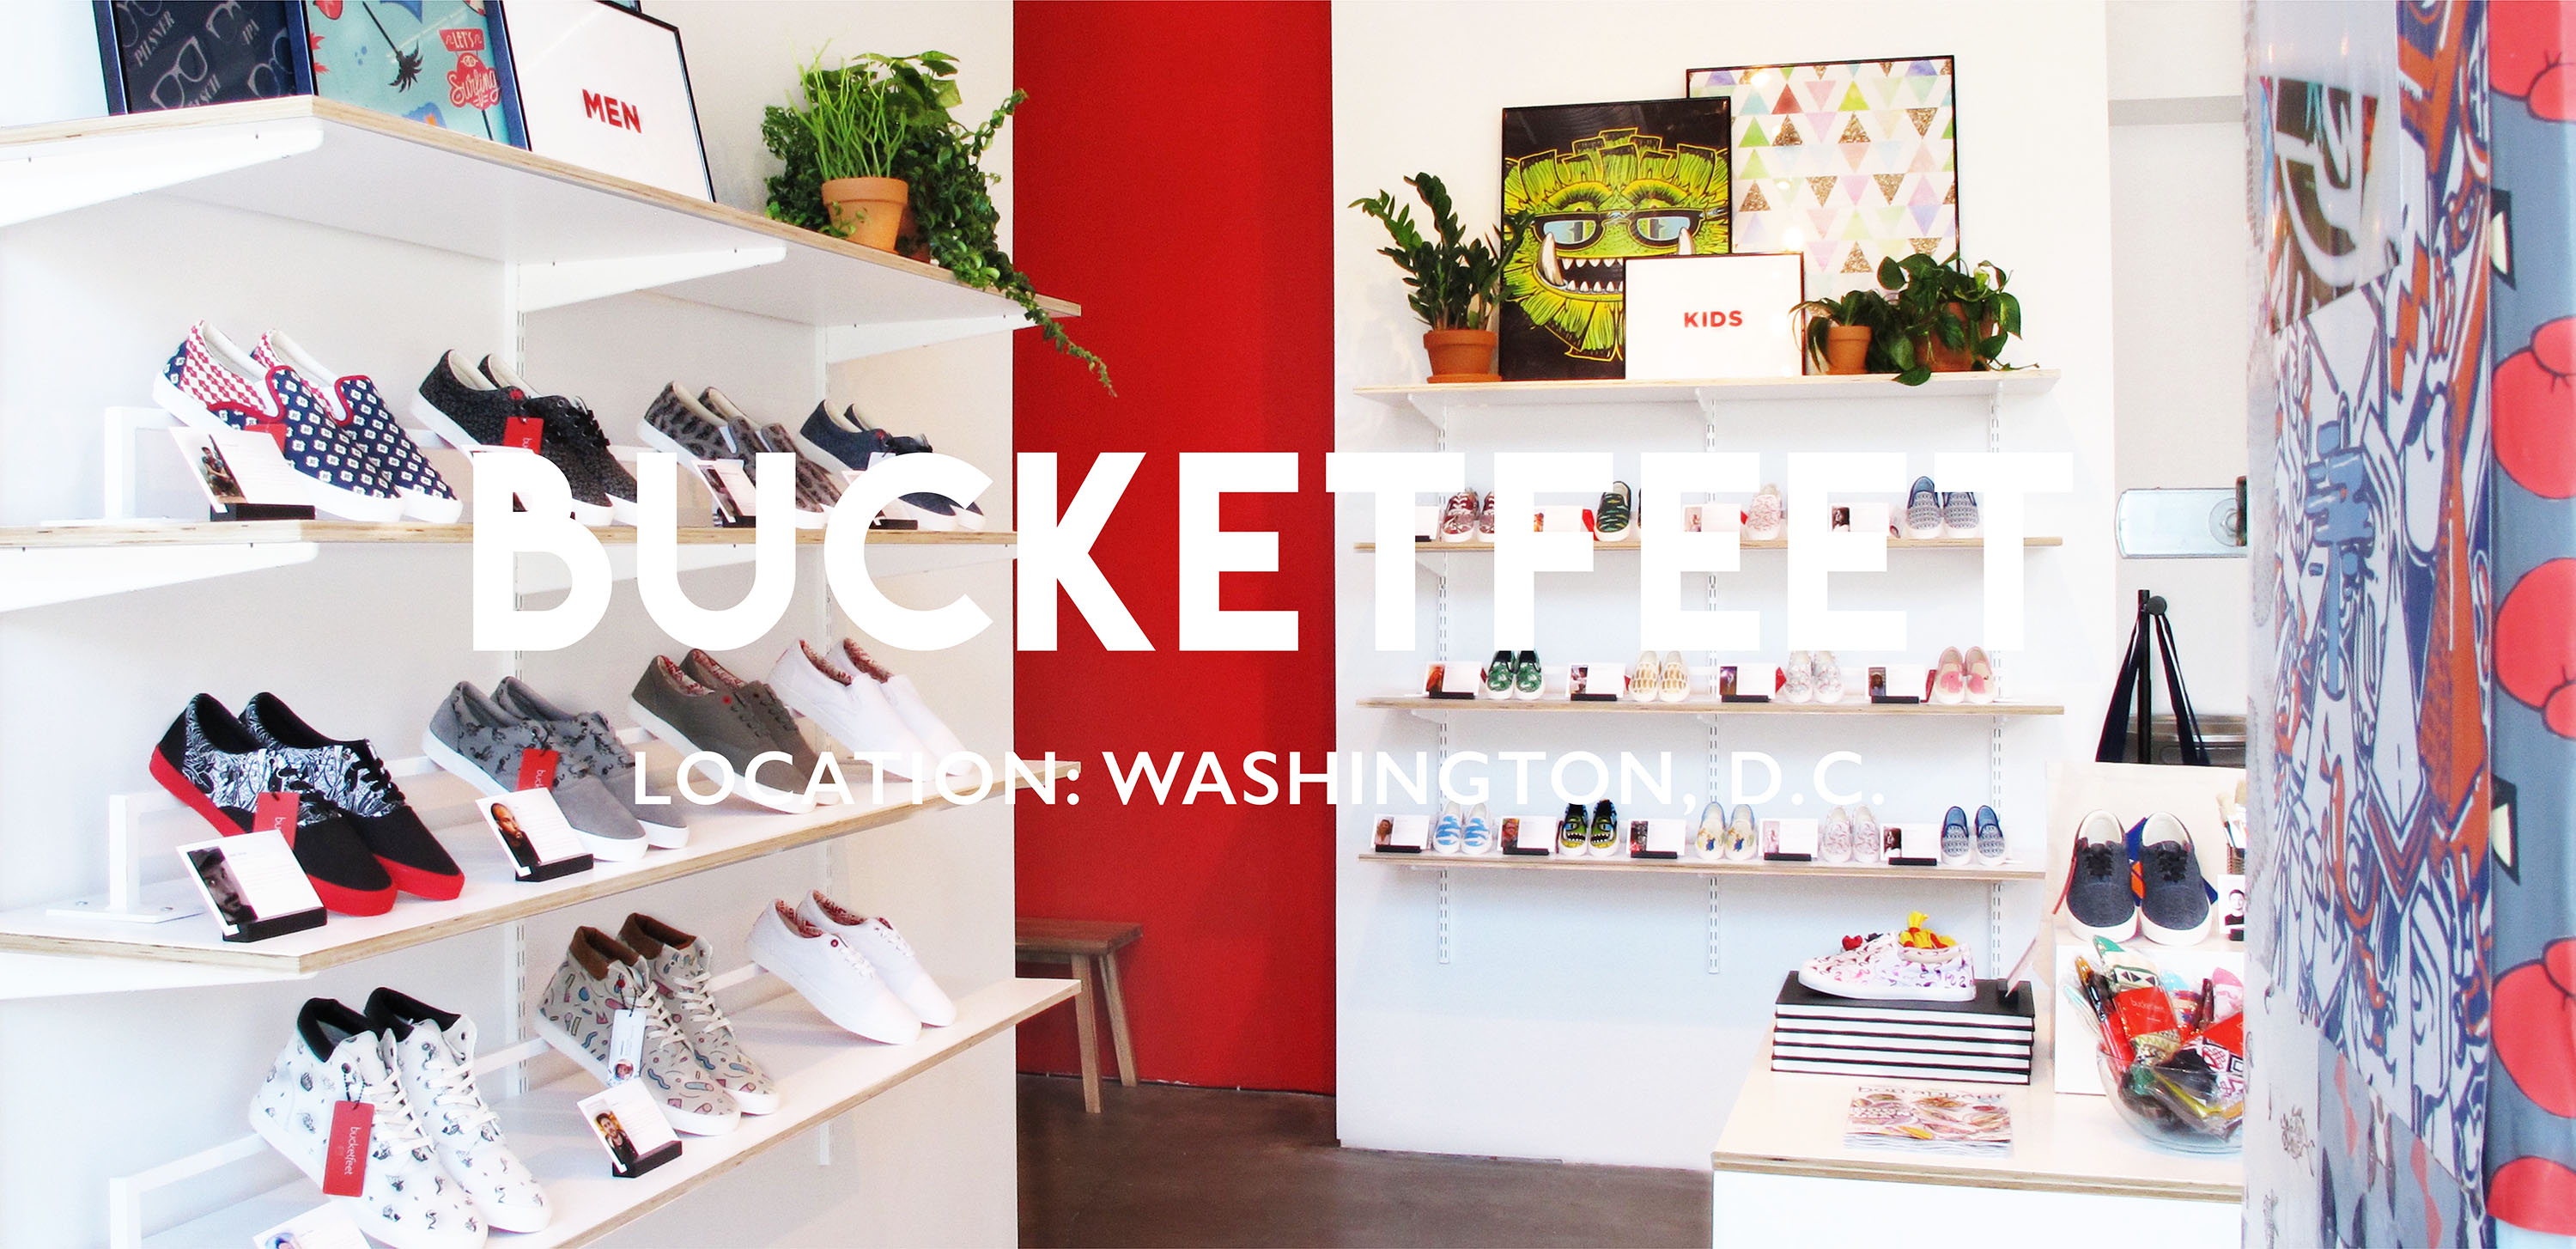 Bucketfeet Shoe Store: Washington, D.C. | Retail space designed by Gala Magriña Design